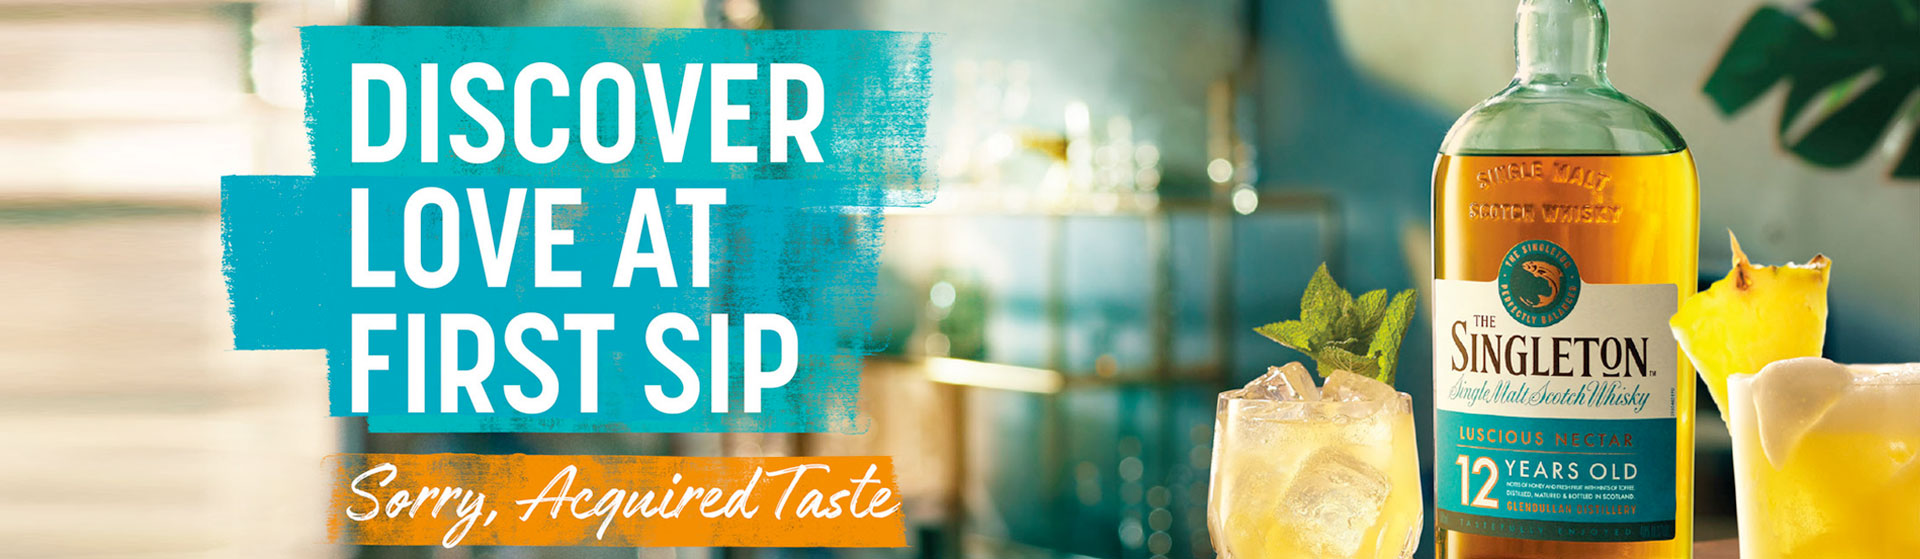 The Singleton - Discover love at first sip